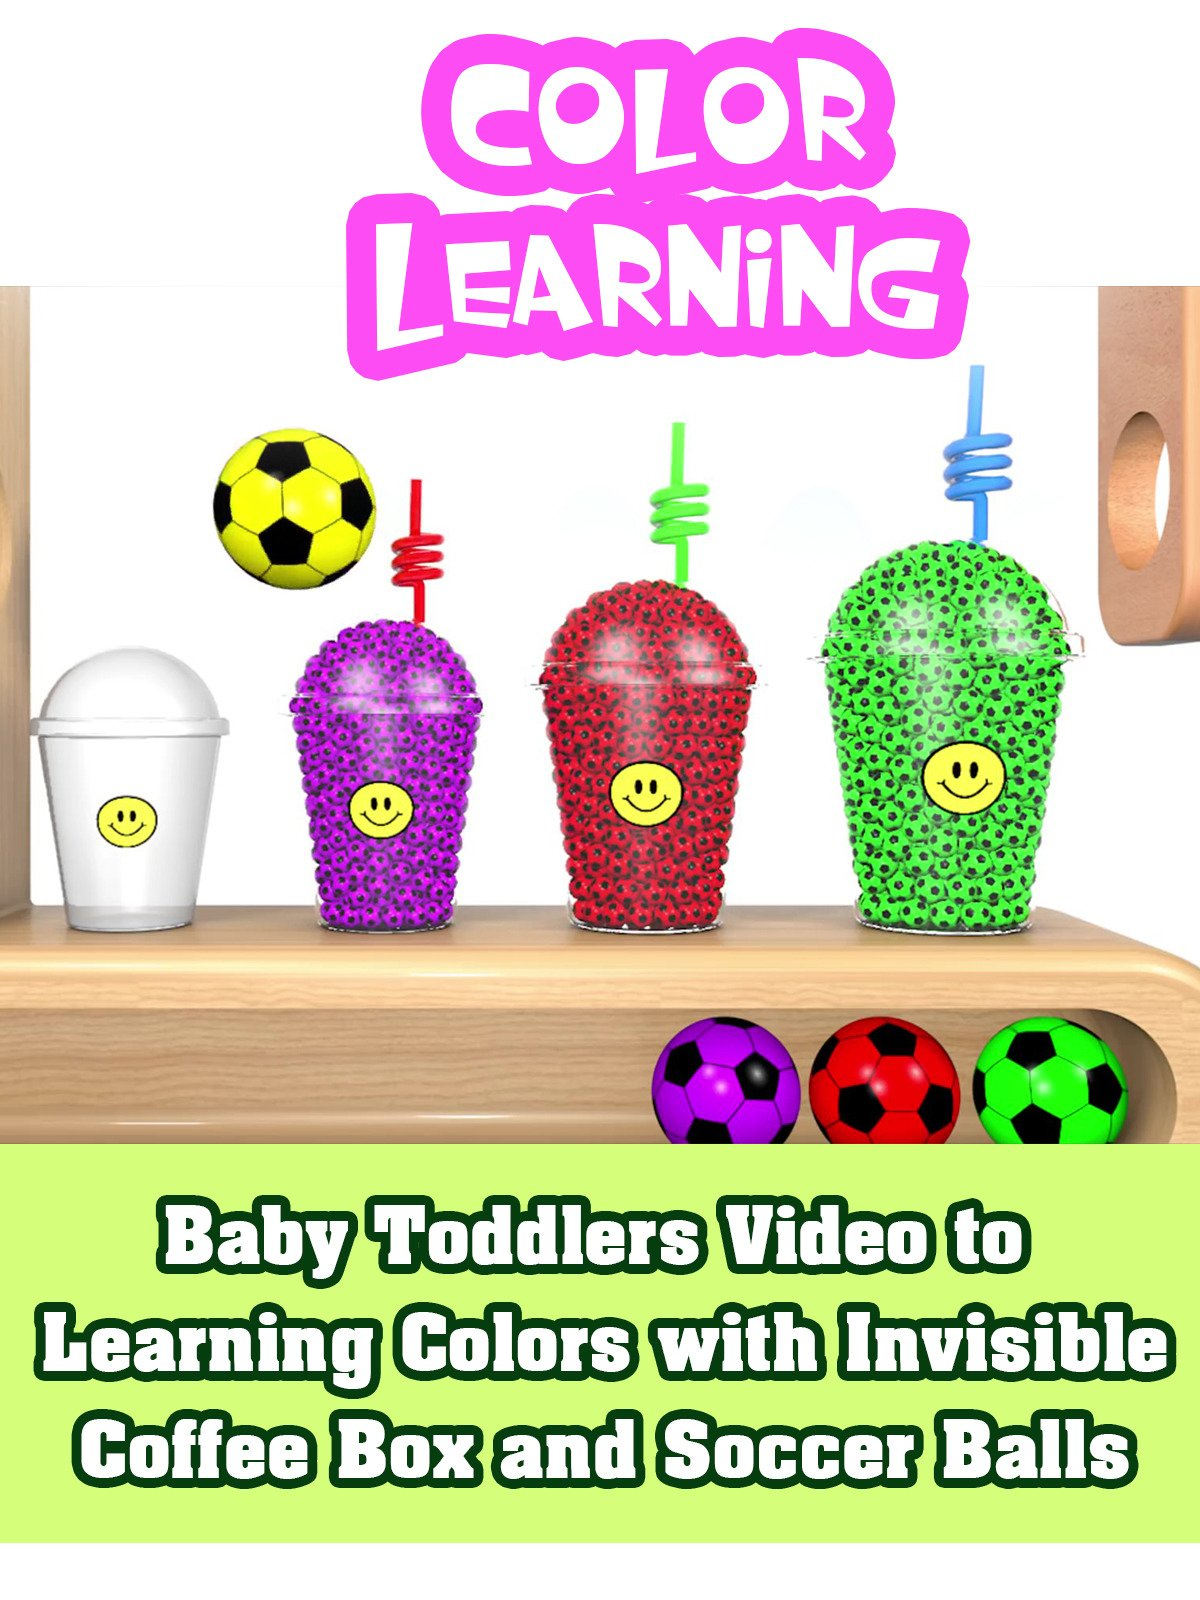 Baby Toddlers Video to Learning Colors with Invisible Coffee Box and Soccer Balls